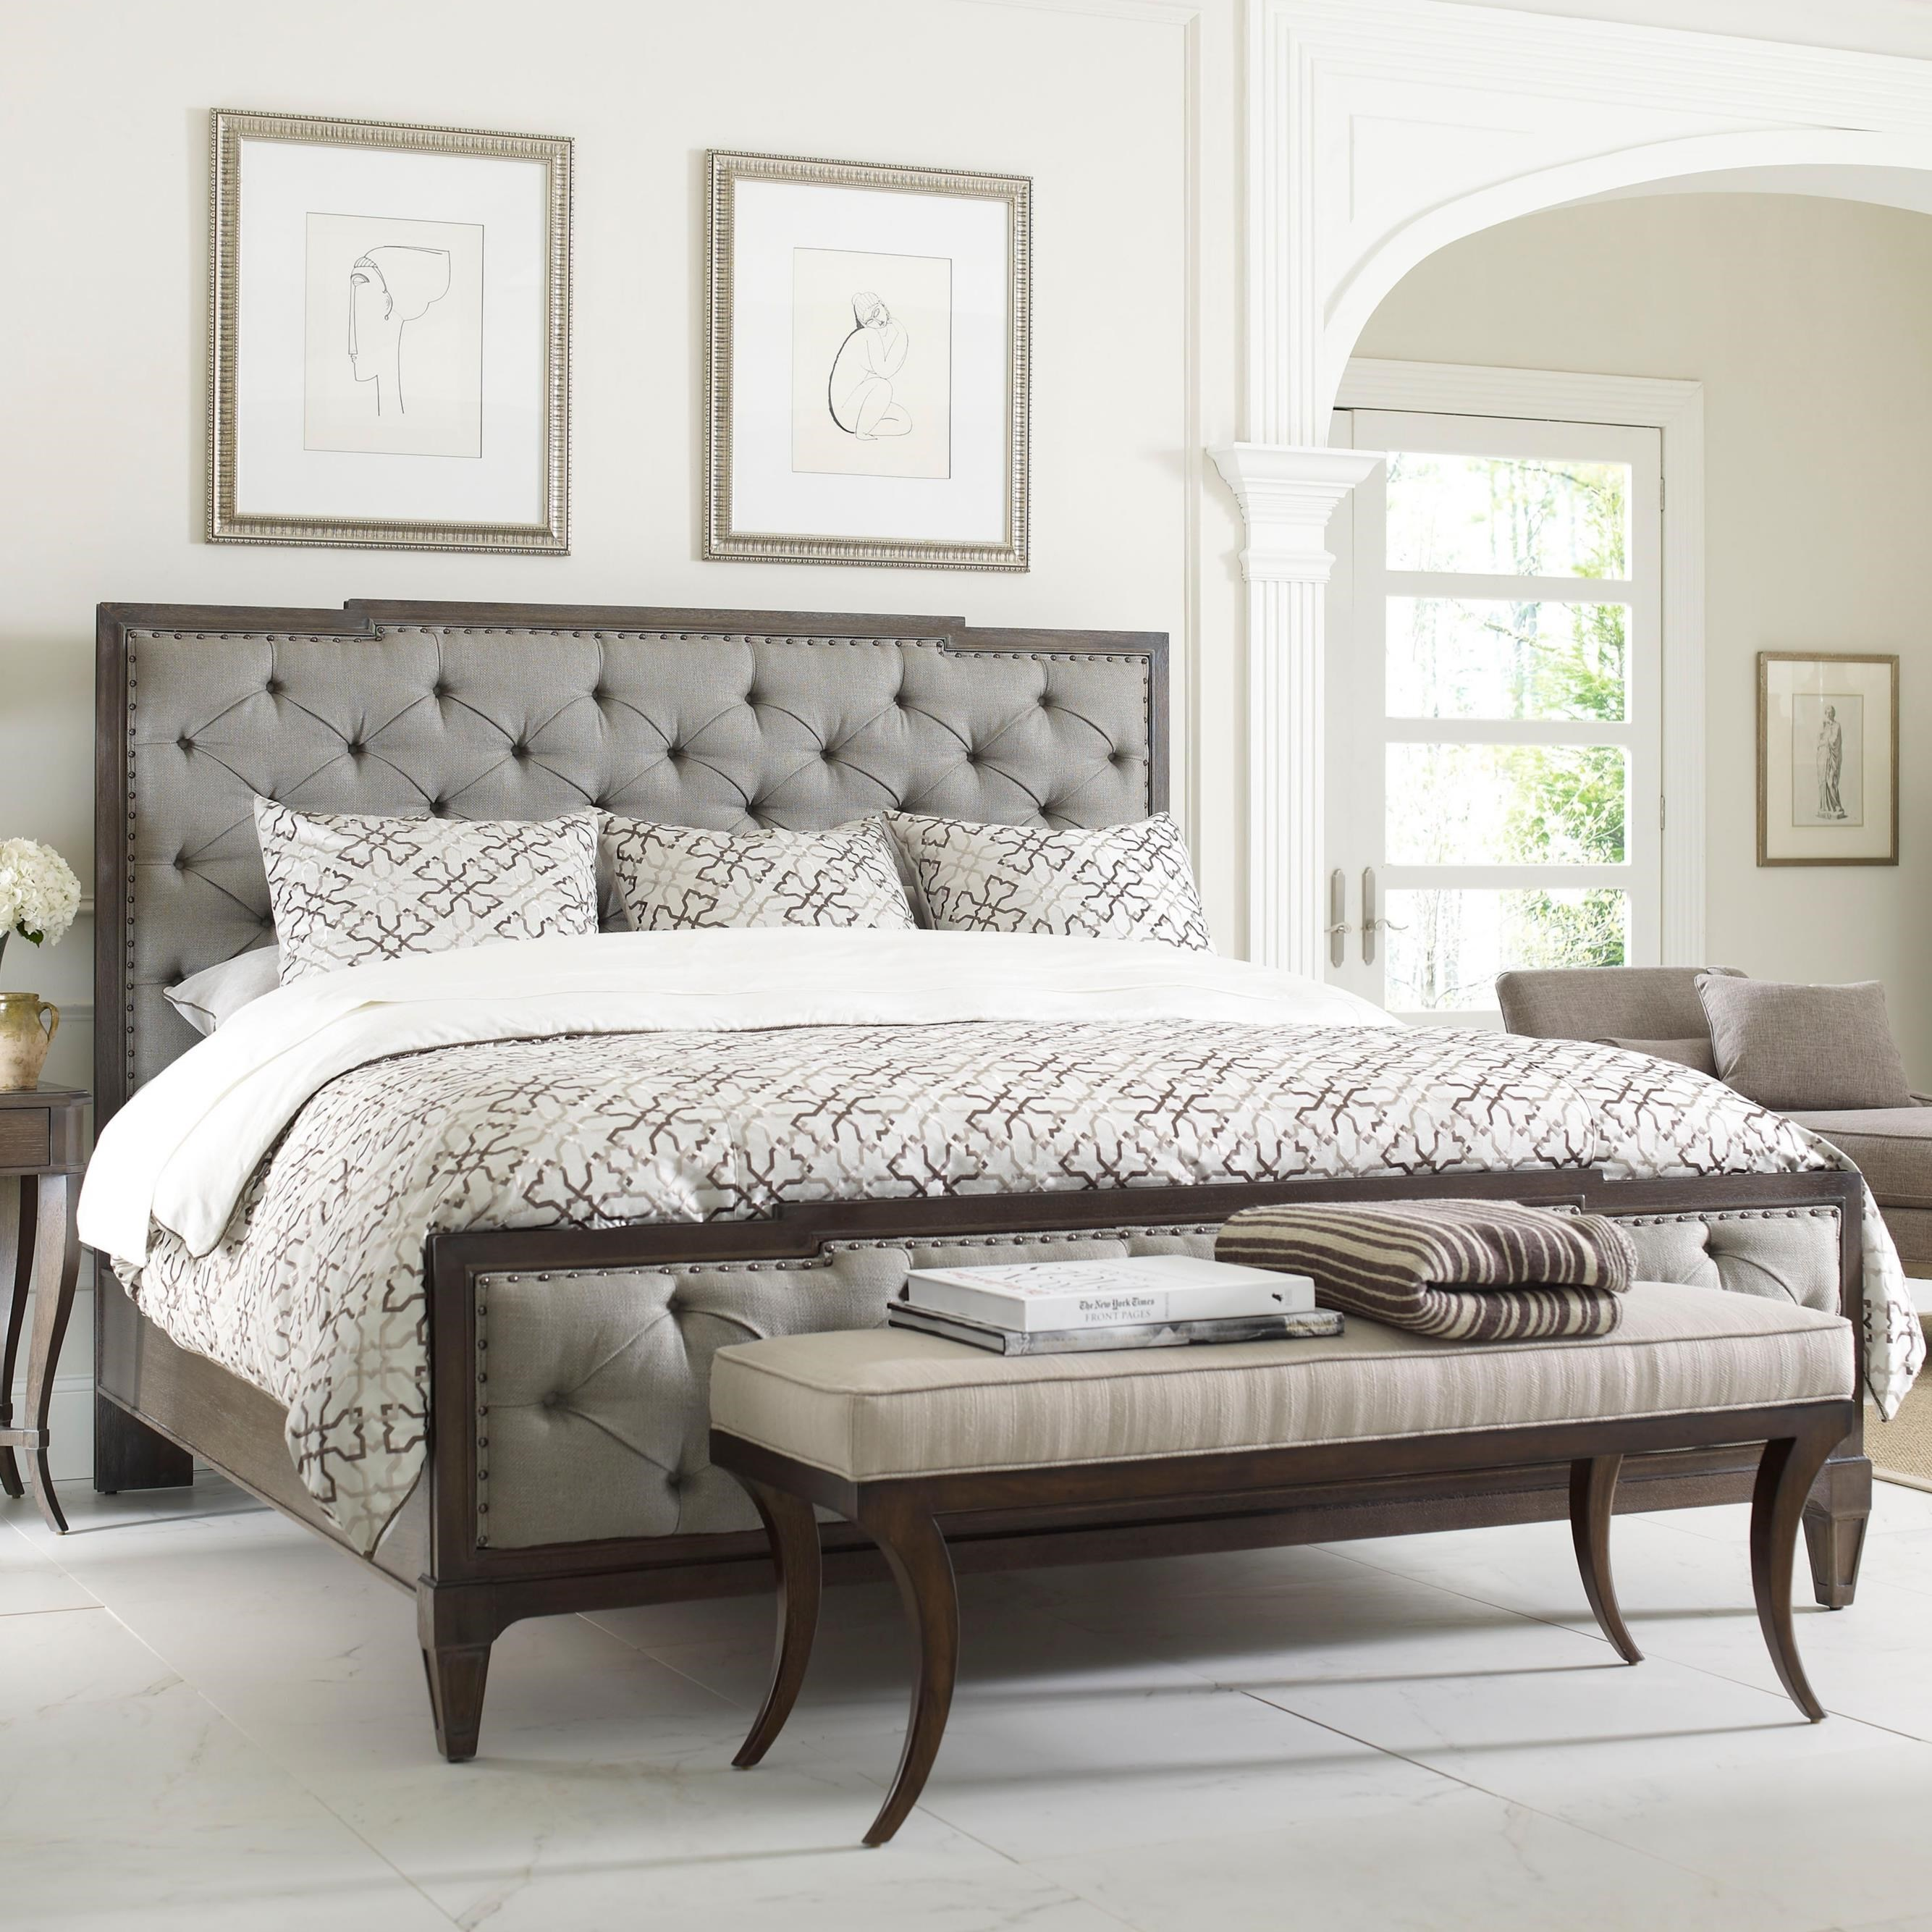 king size bed headboard and footboard  land design reference, Headboard designs